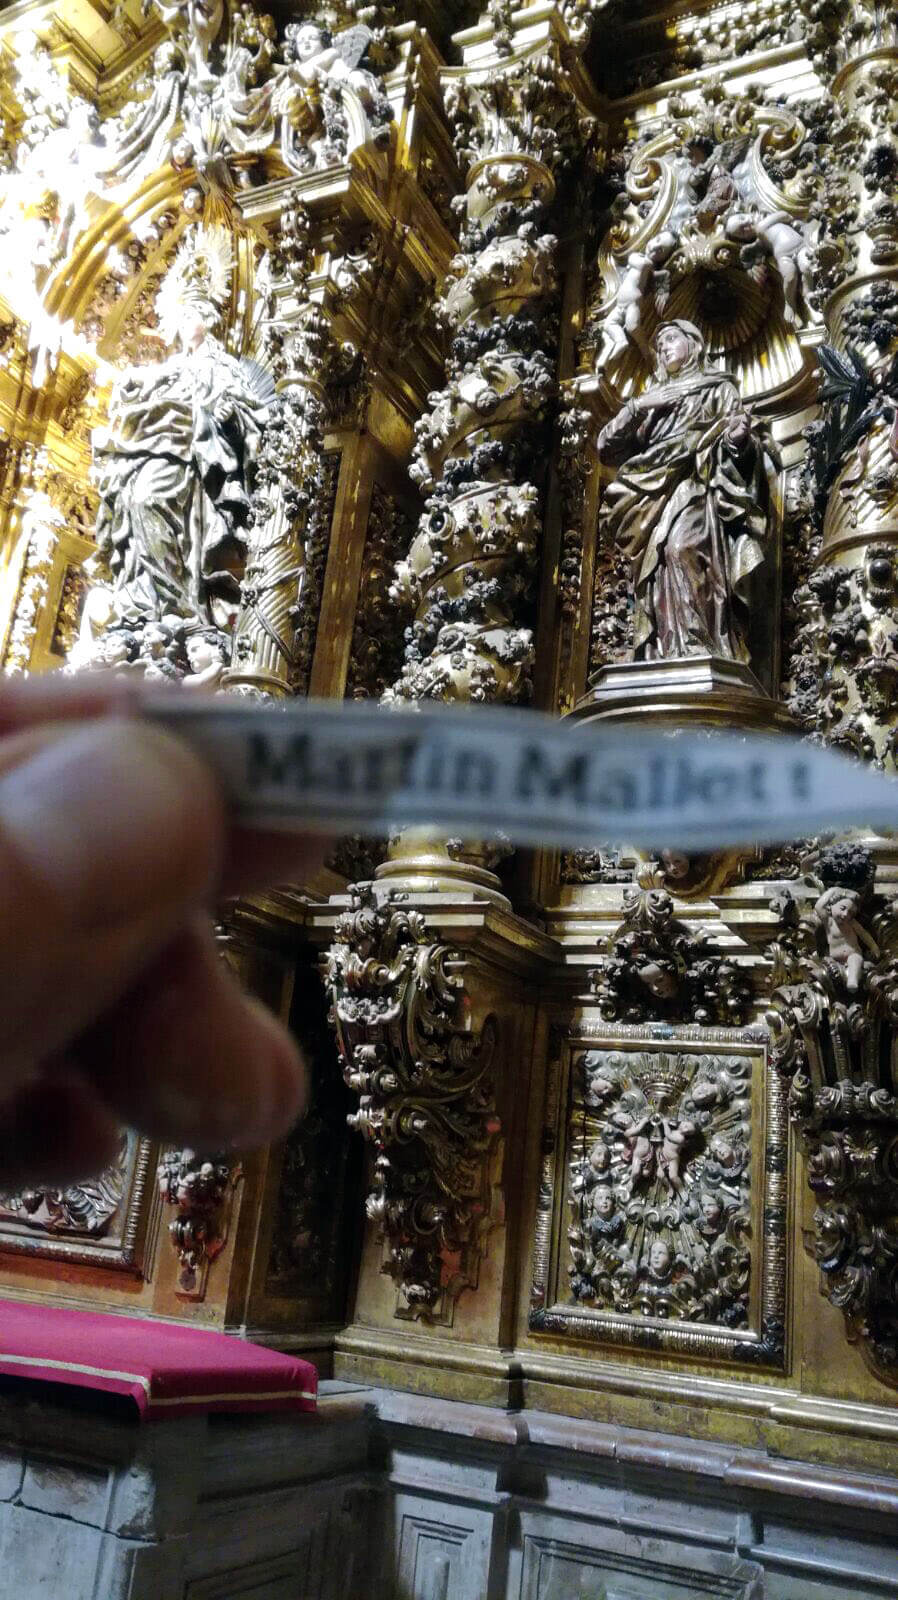 Martin in the cathedral